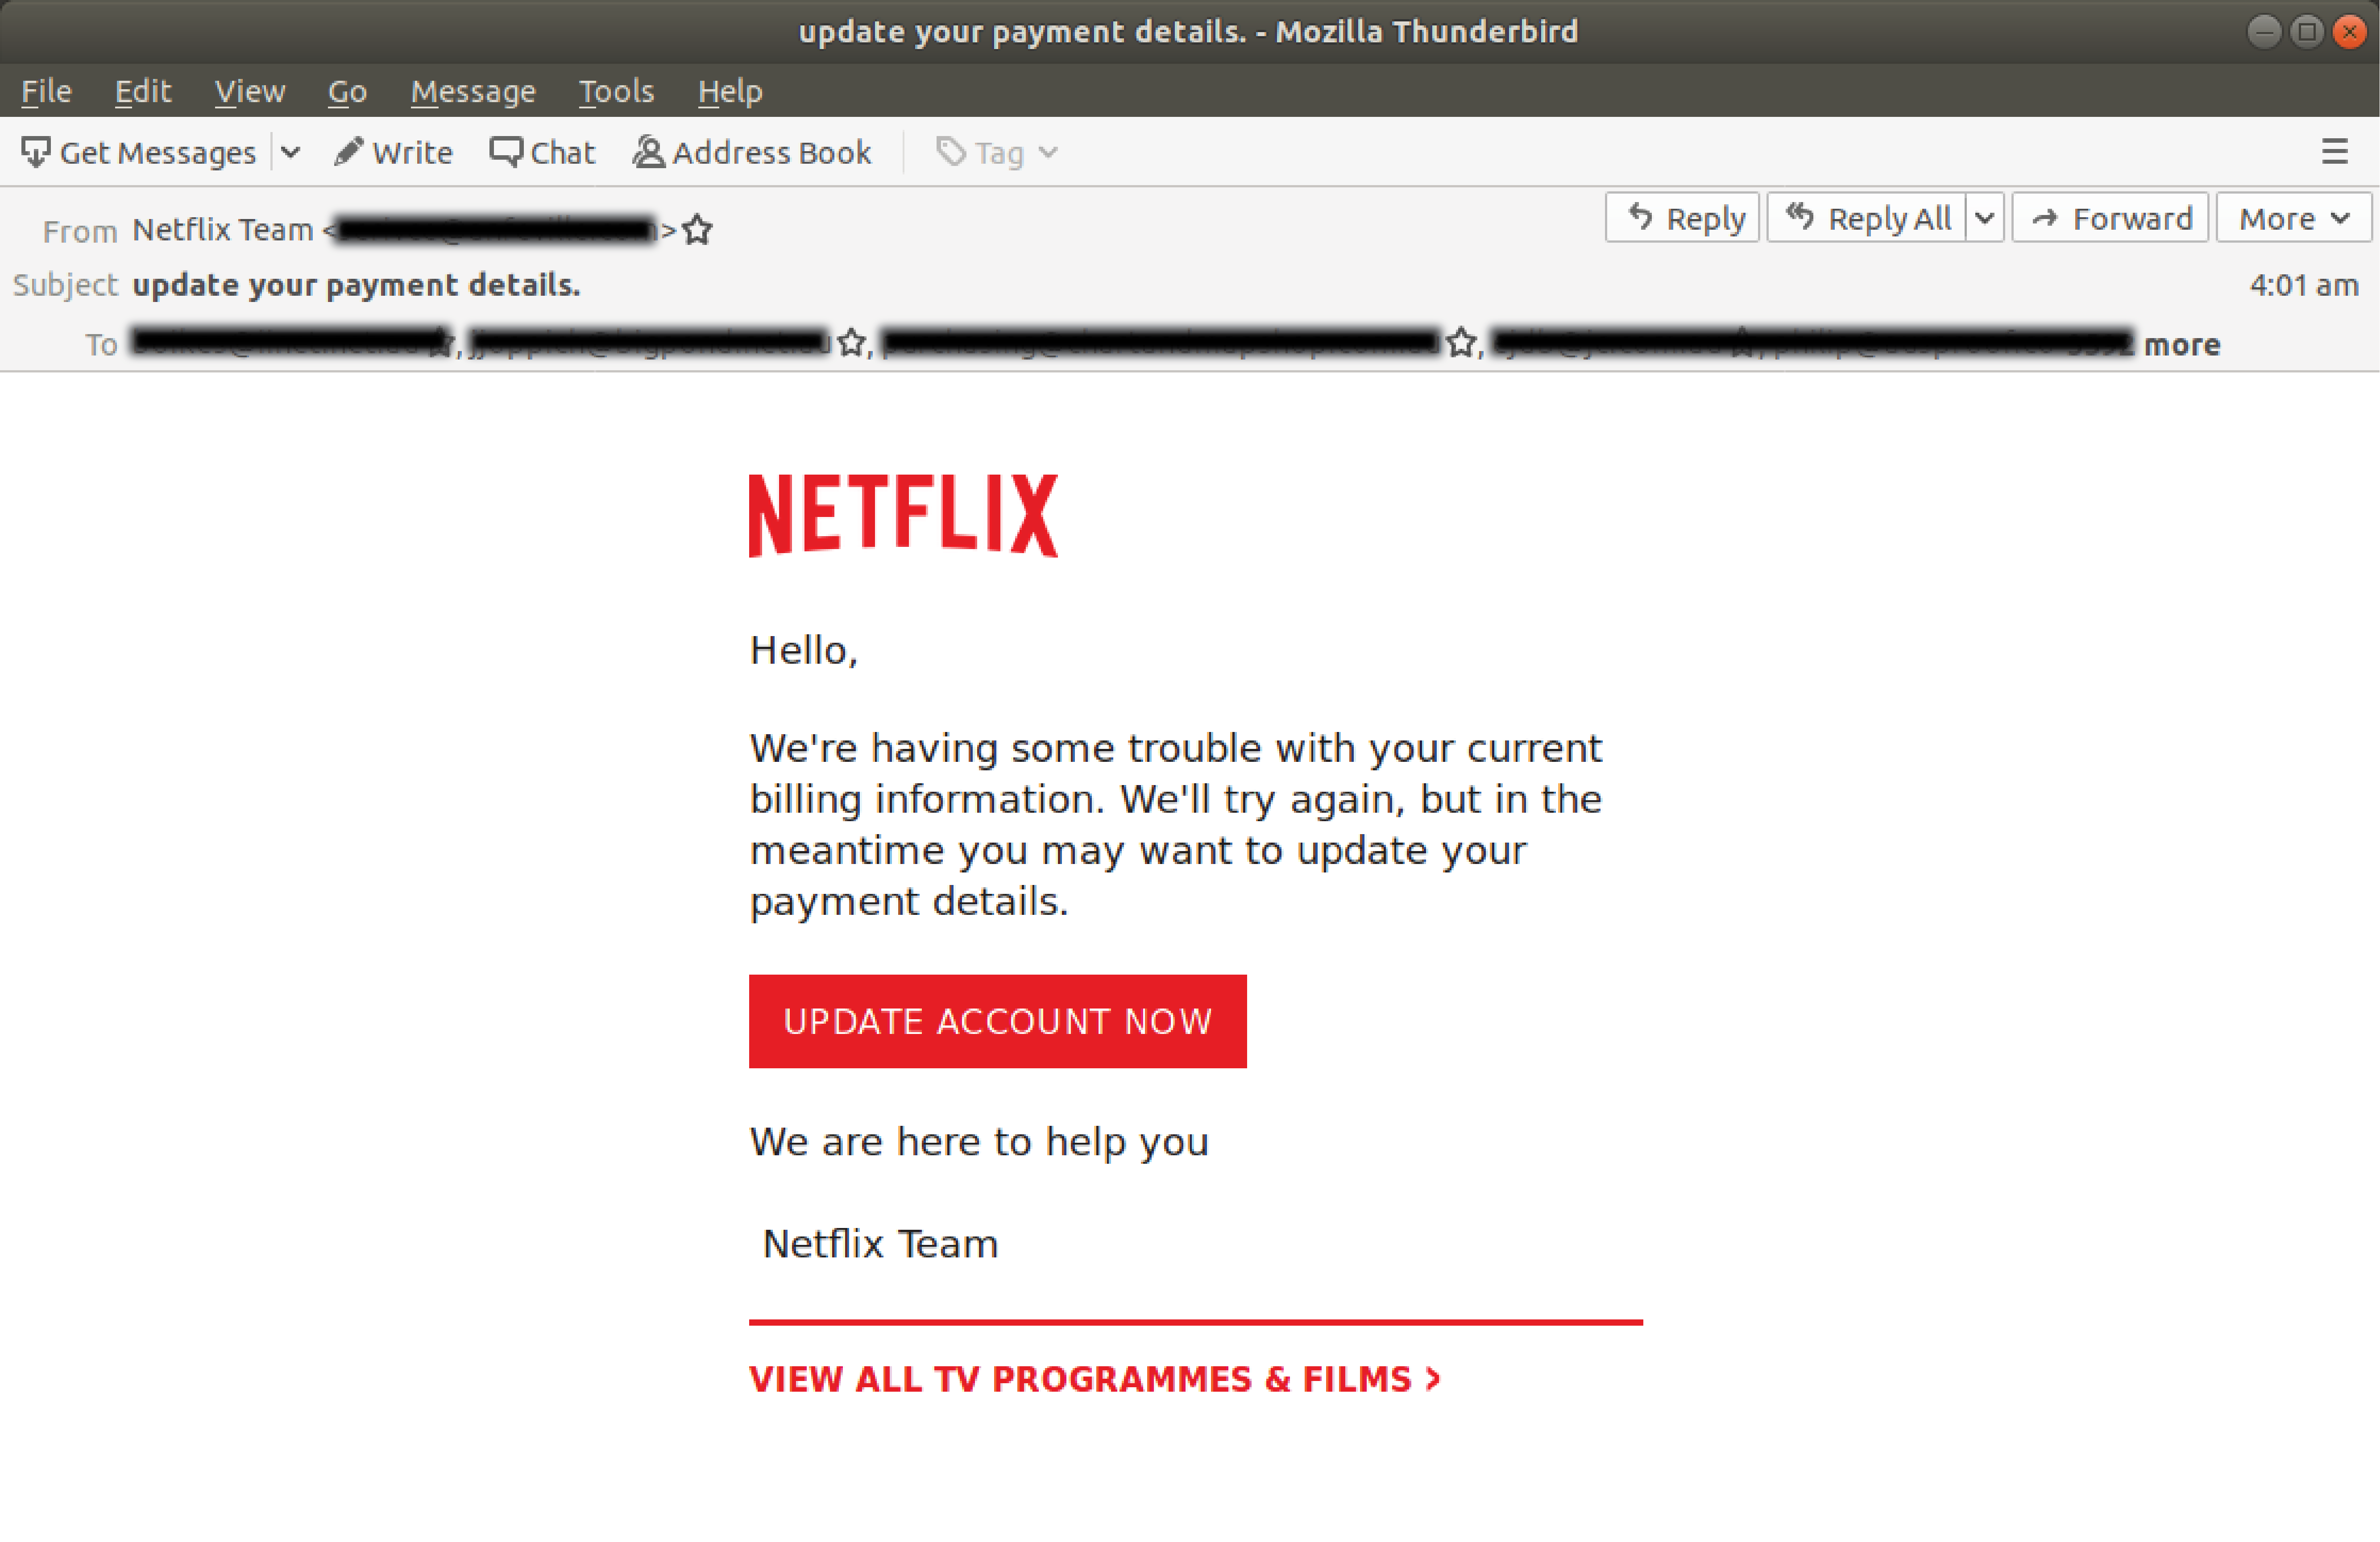 netflix-scam-pic1-email-01